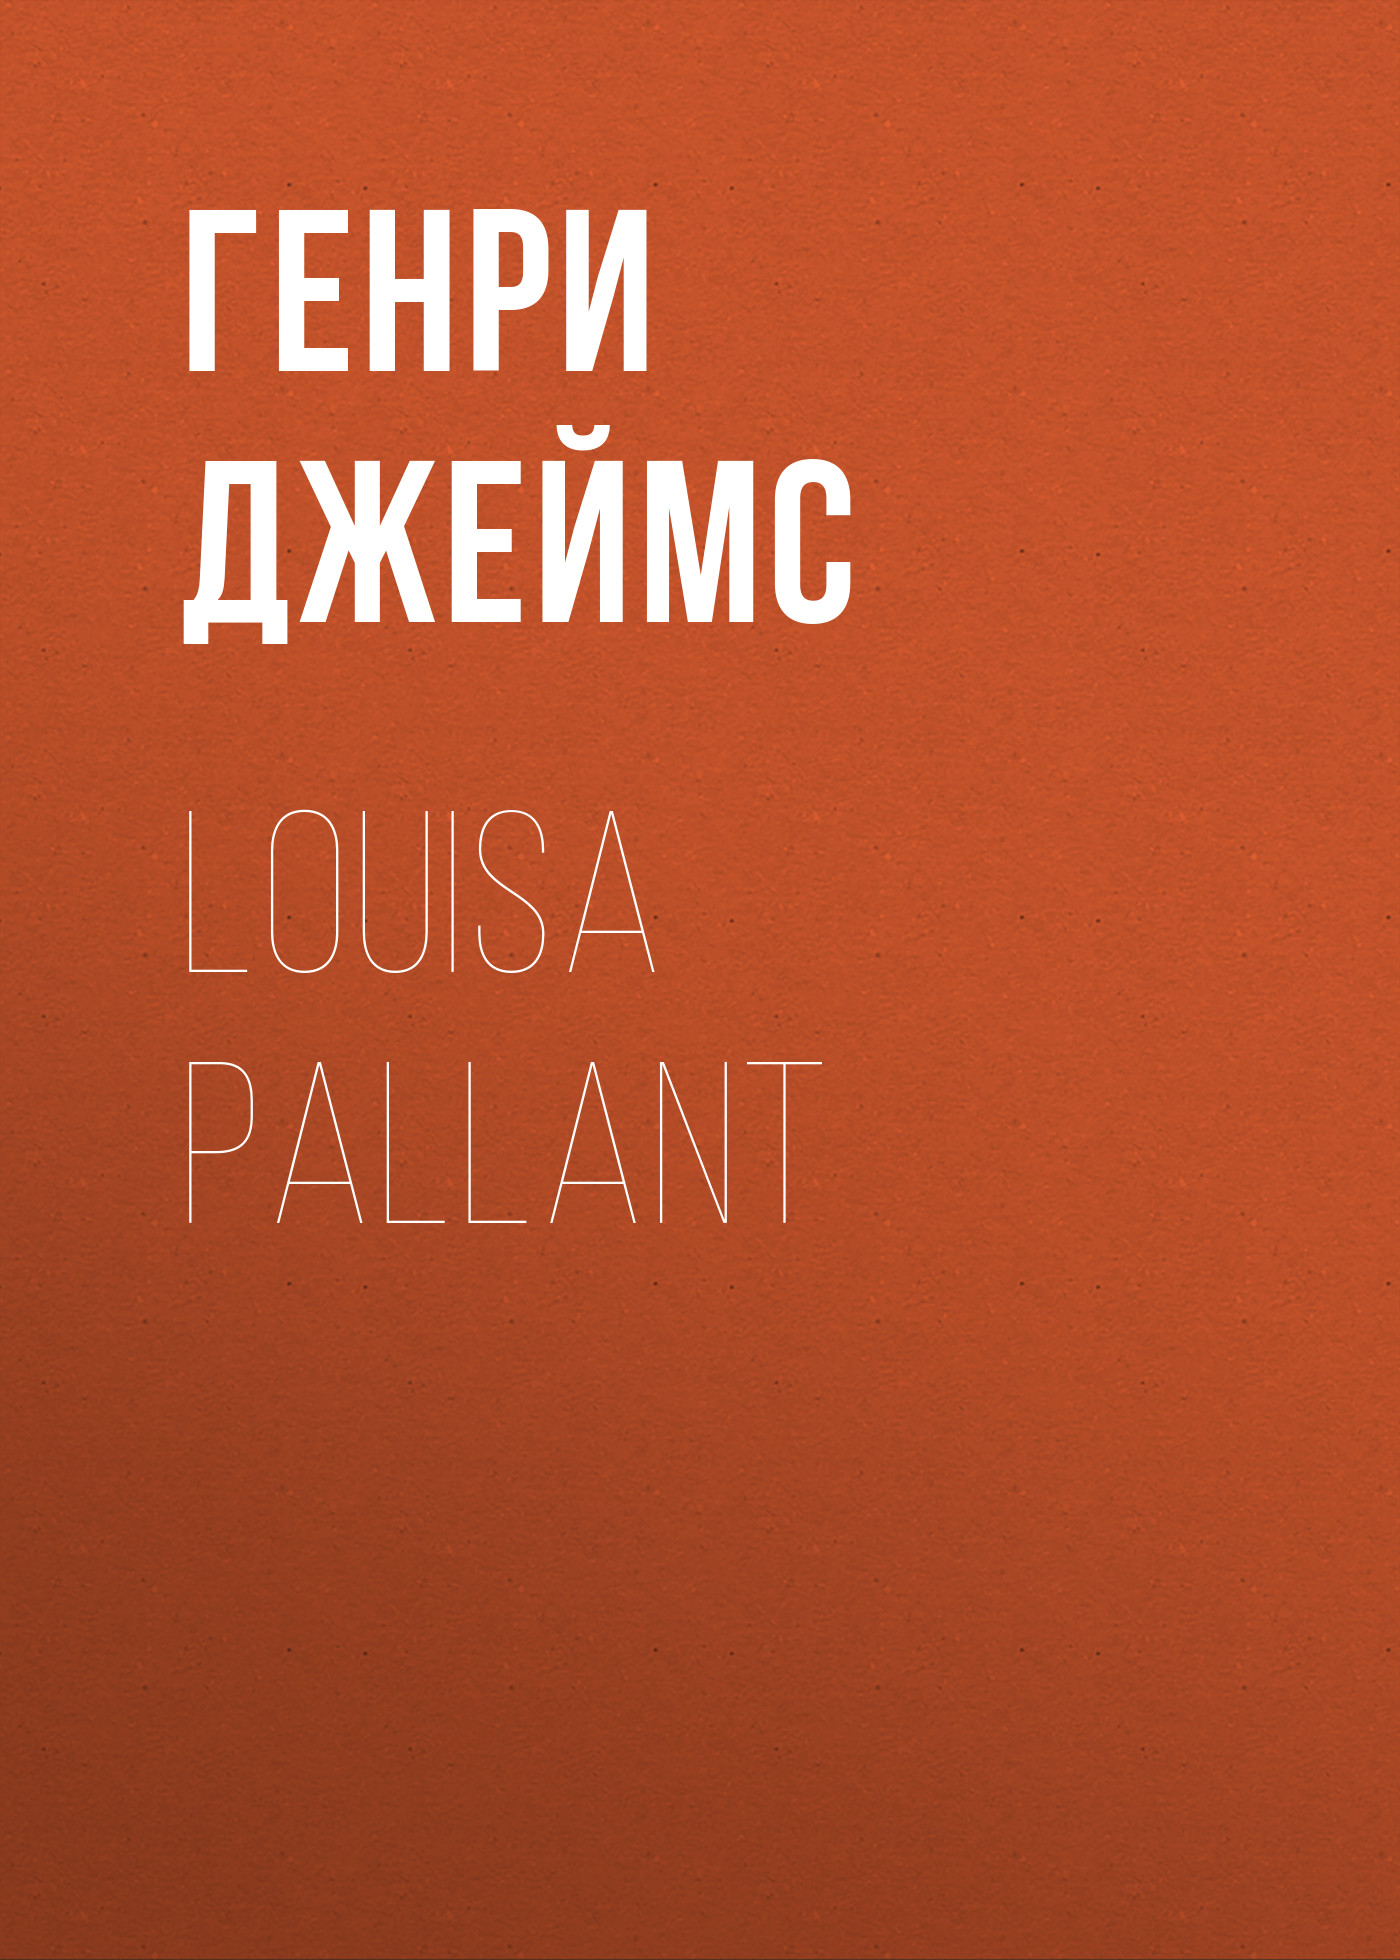 Генри Джеймс Louisa Pallant